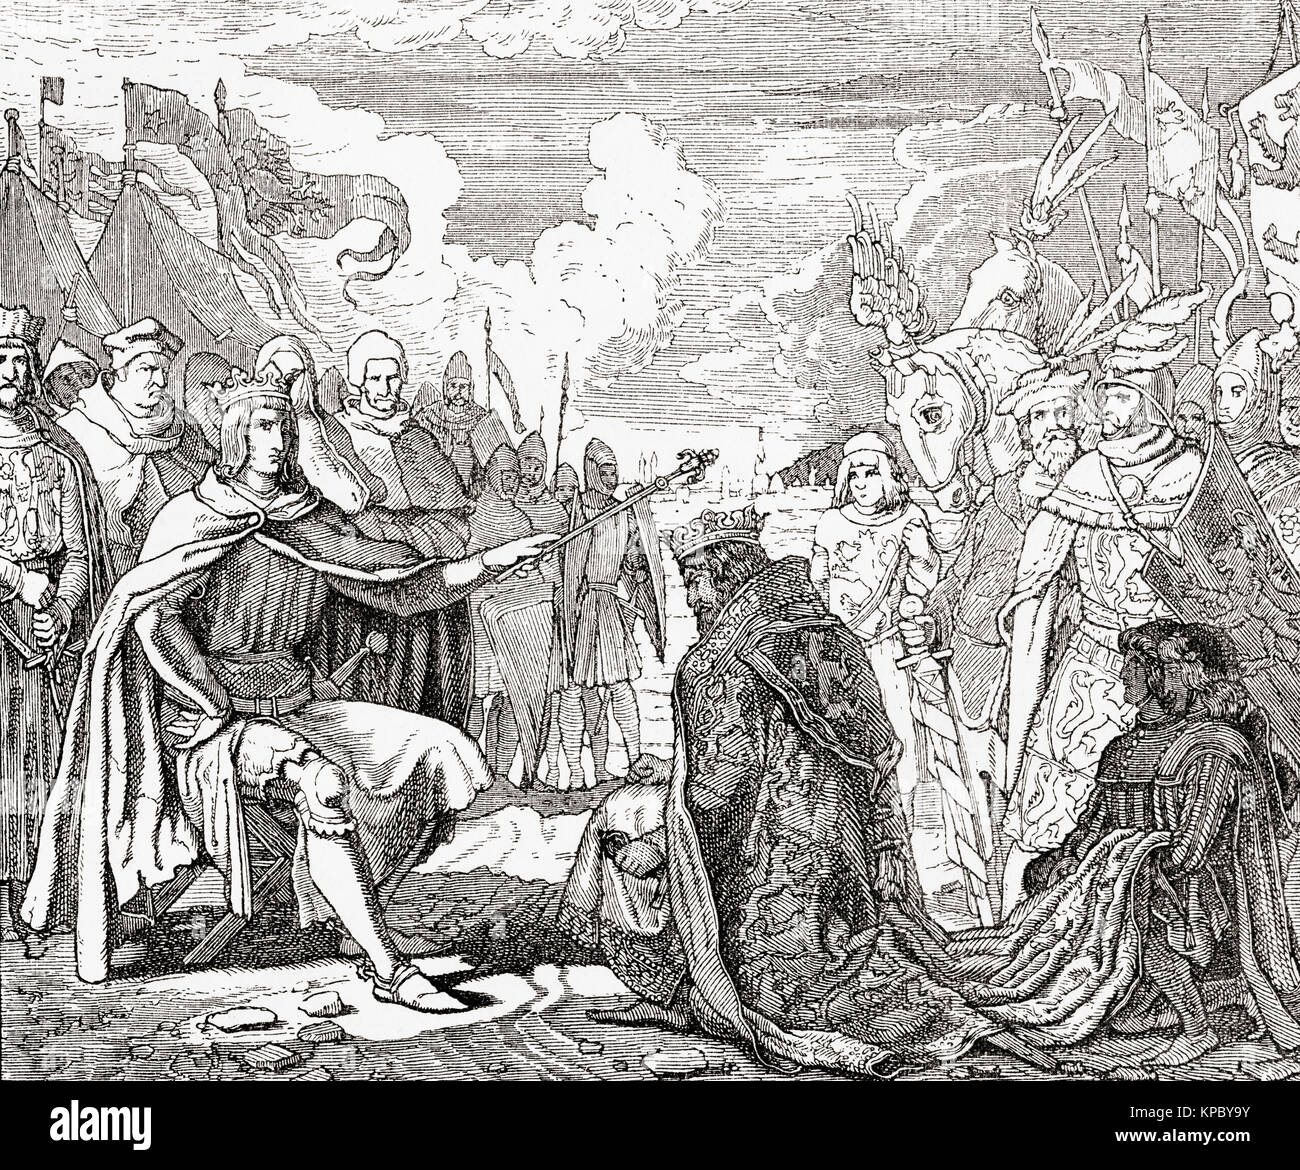 Rudolf of Habsburg reinvesting Ottokar with the Kingdom of Bohemia after his submission in 1276.  Ottokar II of - Stock Image